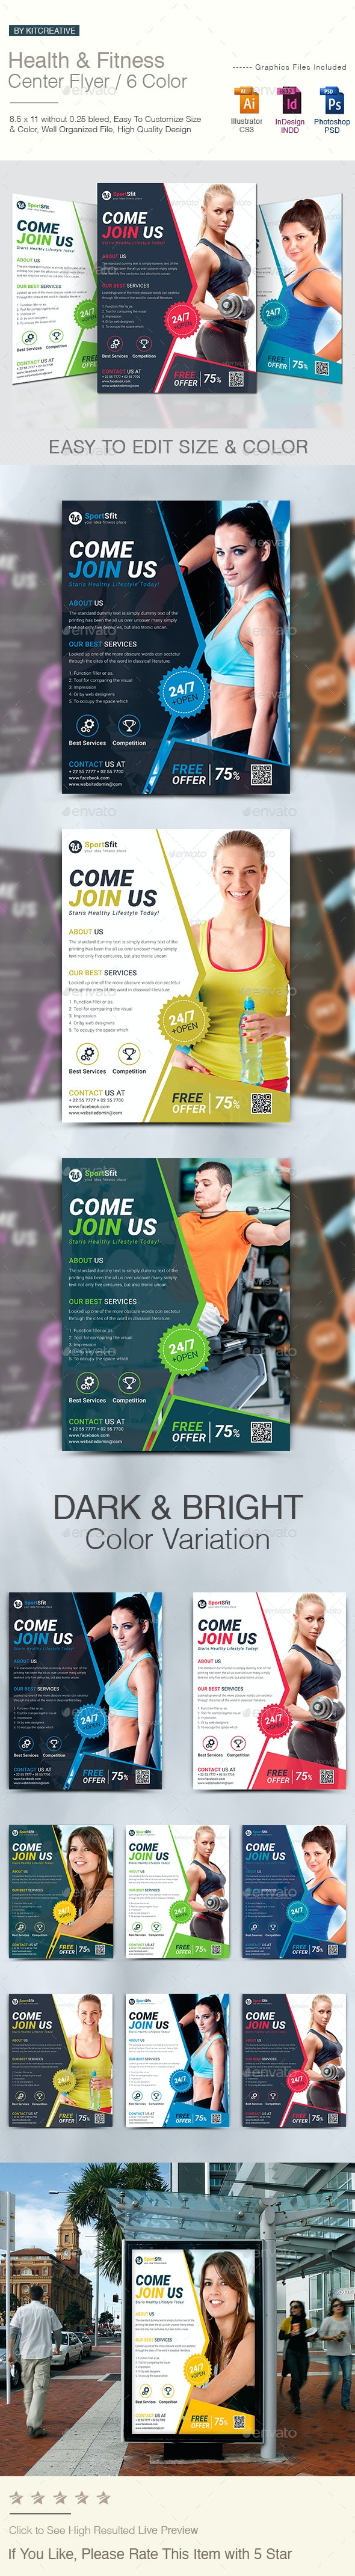 Health & Fitness Center Flyer - Corporate Flyers